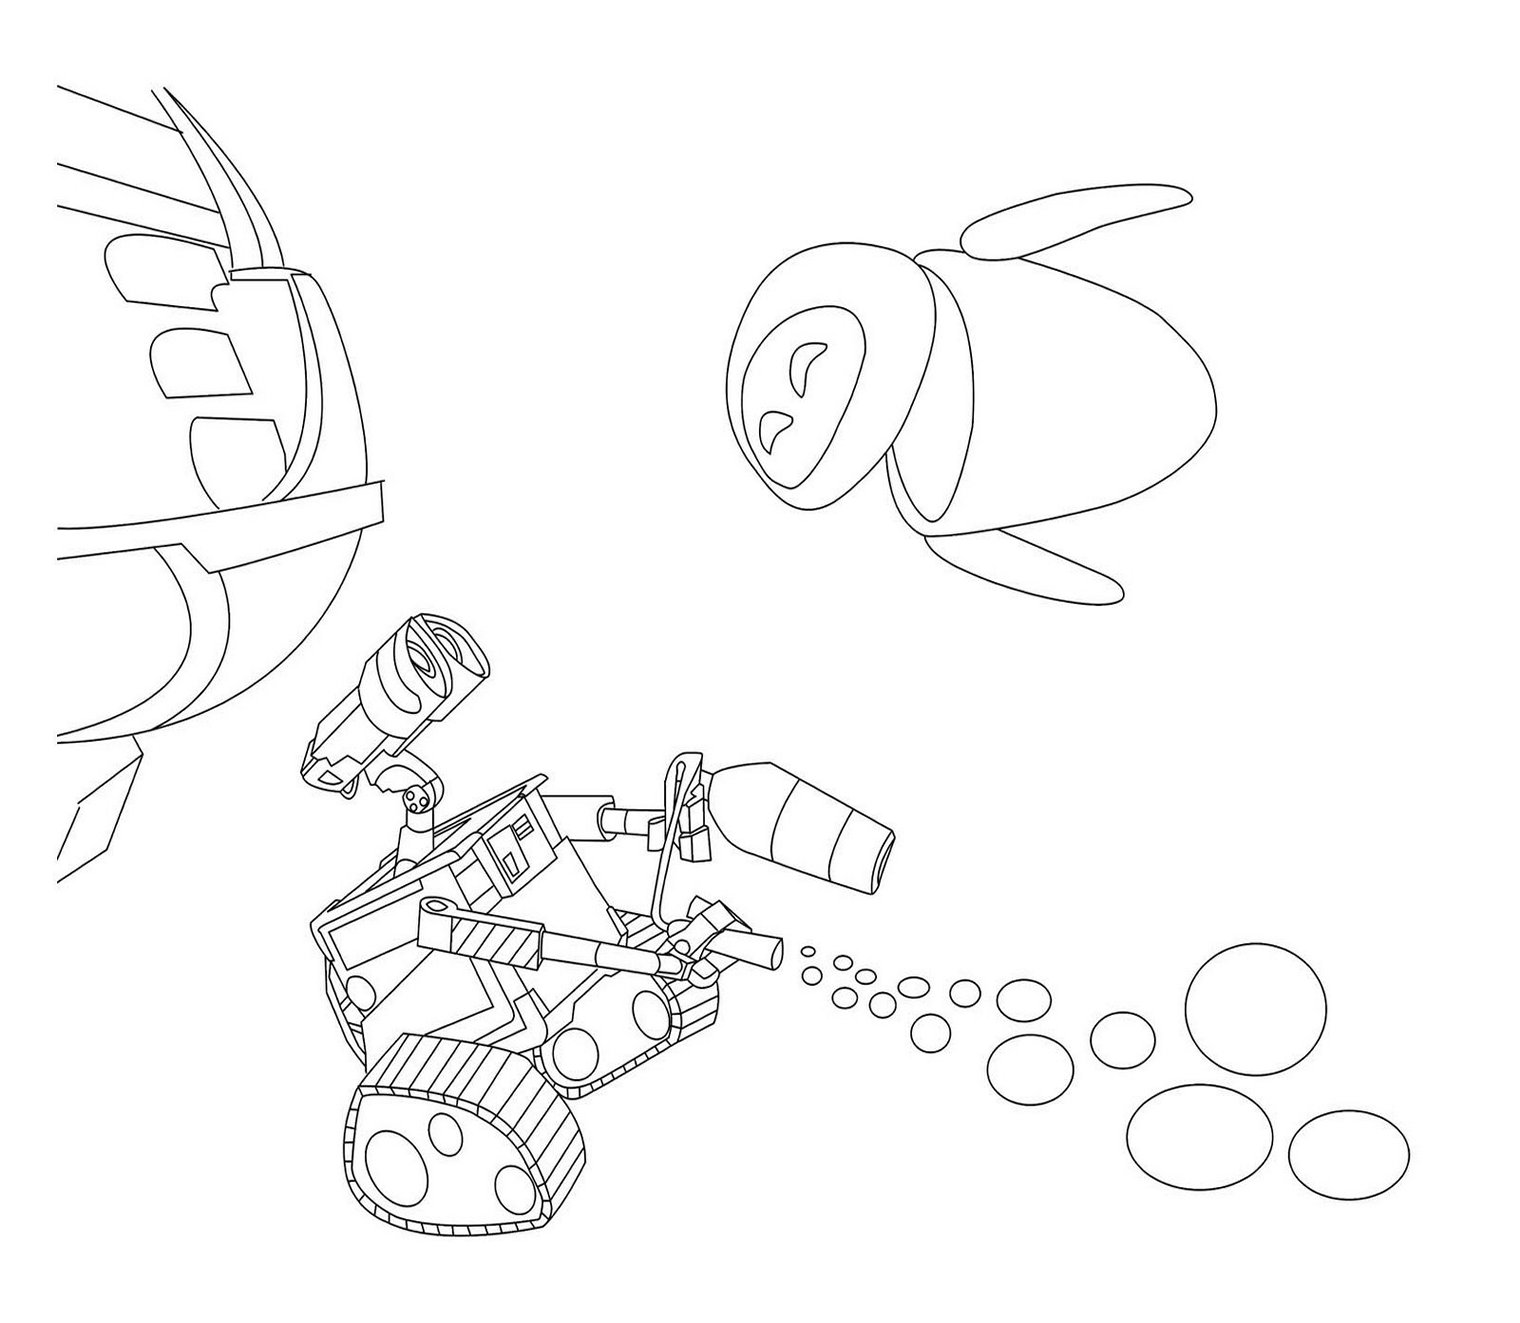 Long e coloring pages - Wall E Coloring Pages